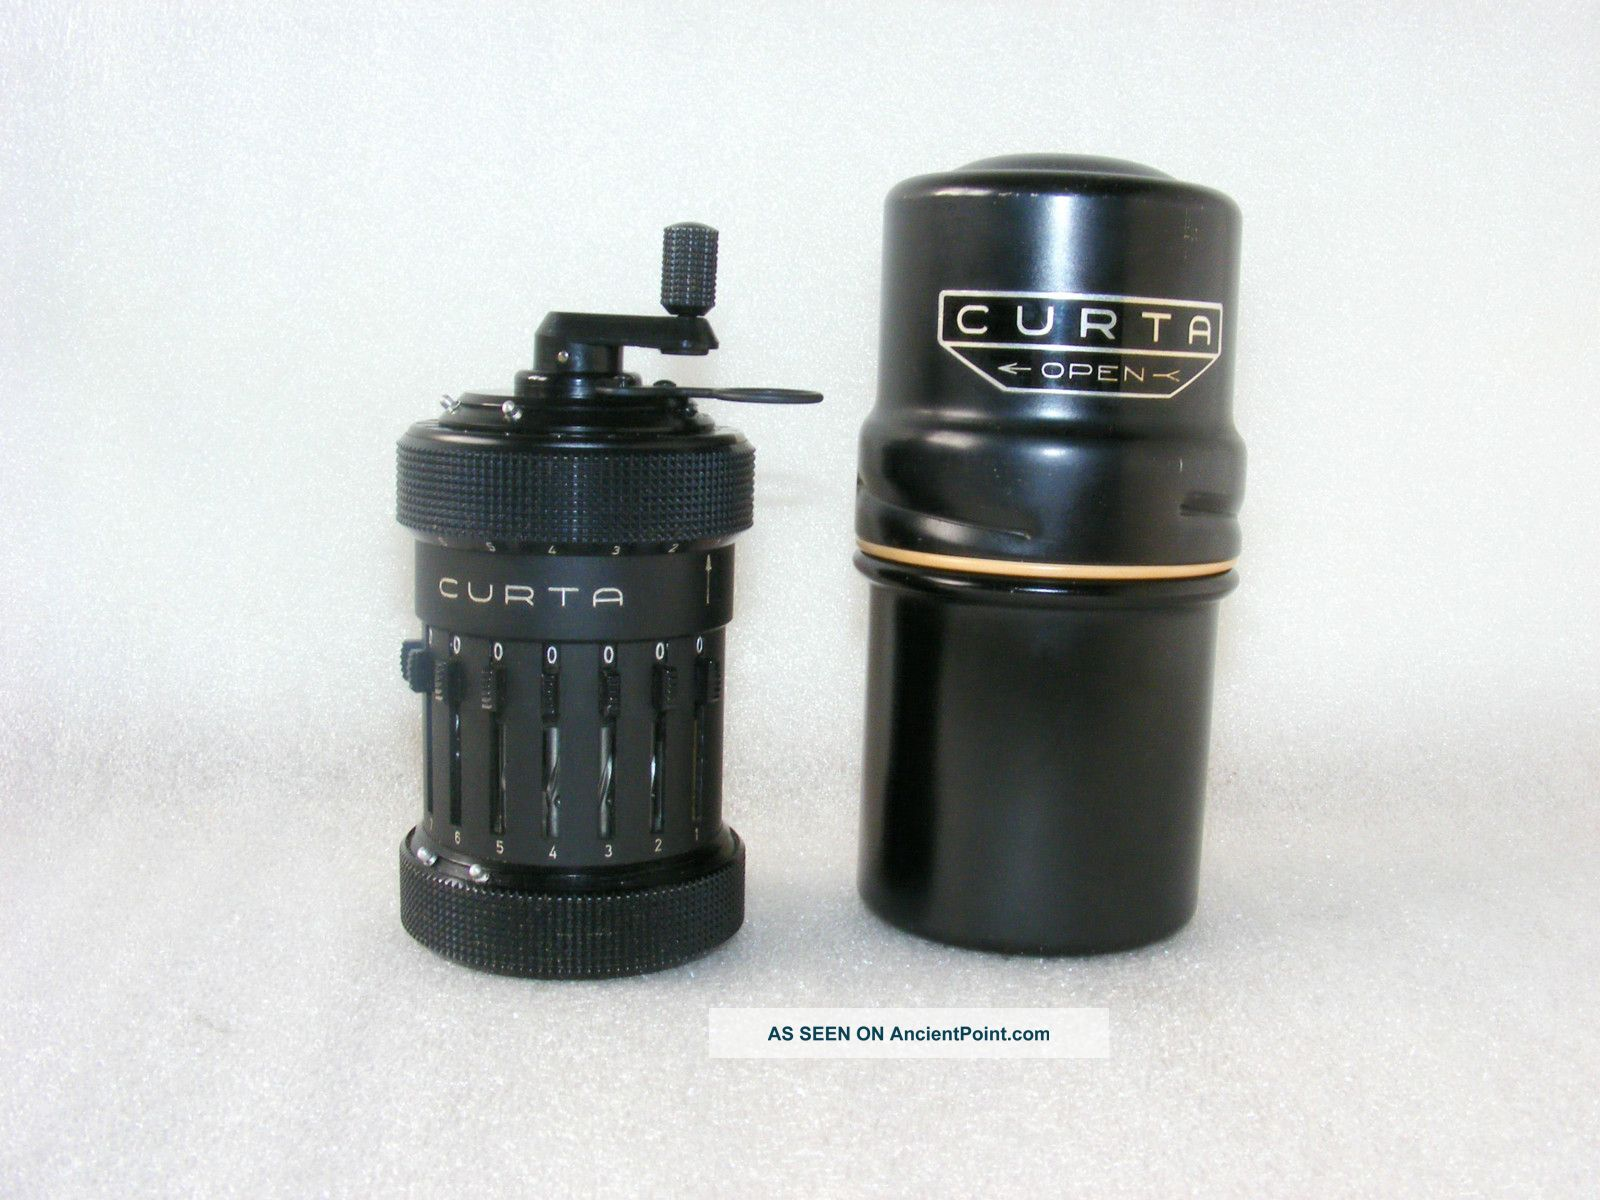 CURTA CALCULATOR TYPE I photo